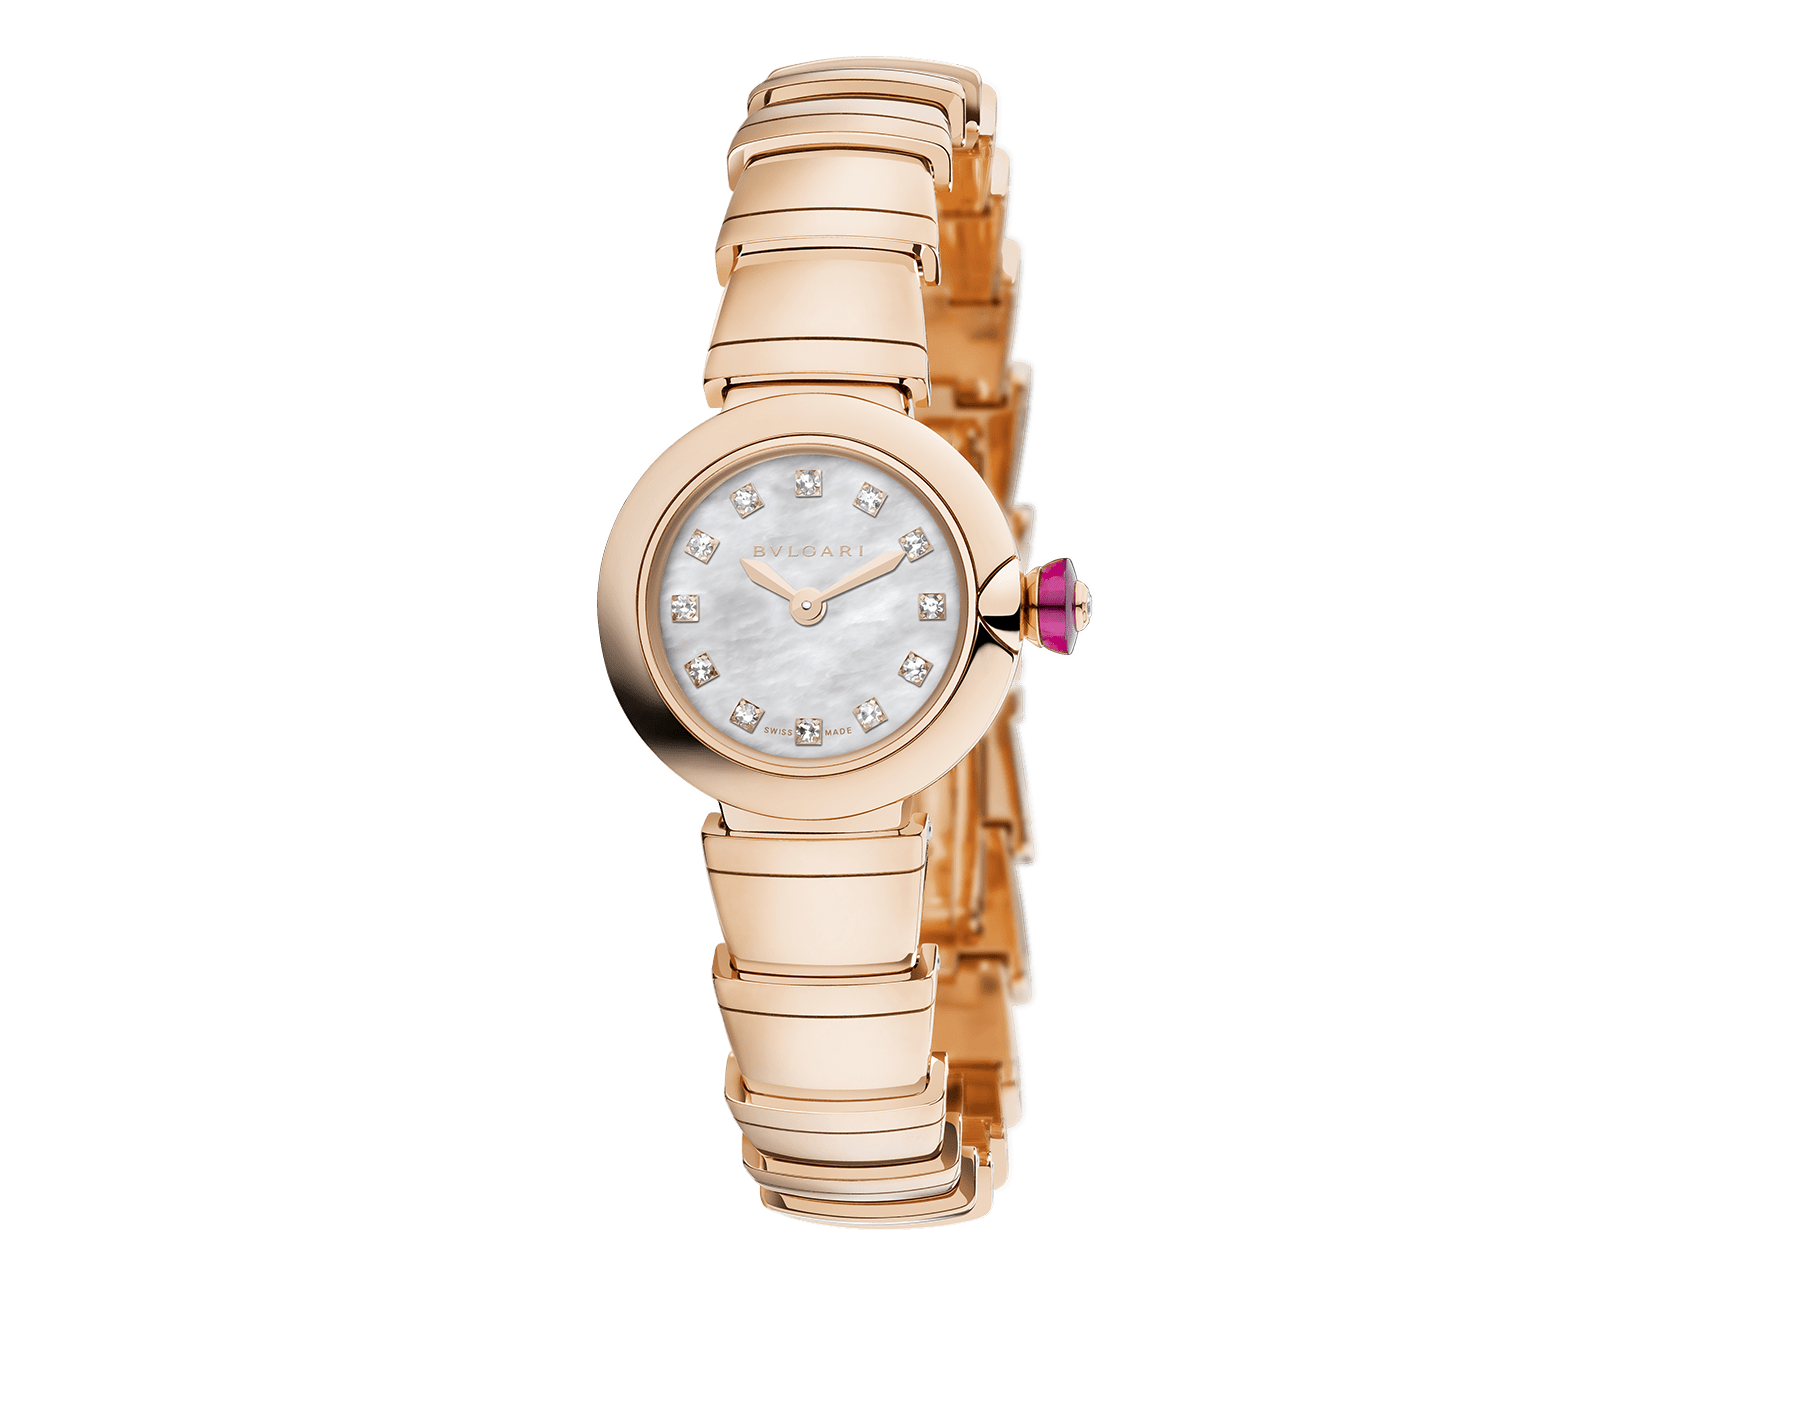 Piccola Lvcea watch in 18 kt rose gold case and bracelet, with white mother-of-pearl dial and diamond indexes. 102502 image 1